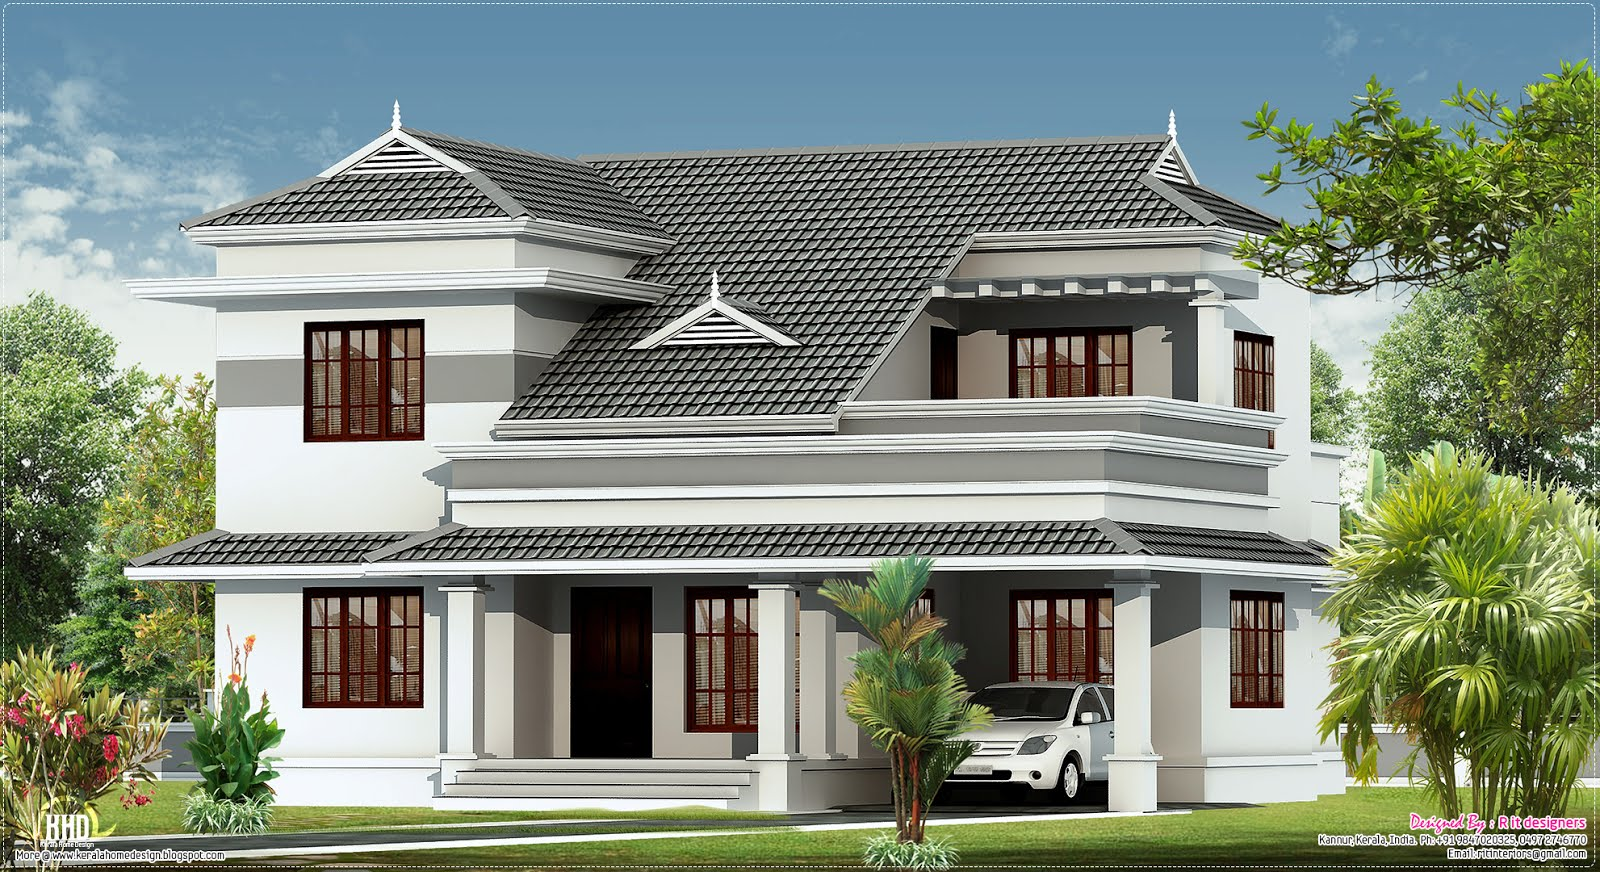 New villa design in 2250 kerala home design and for Small villa plans in kerala